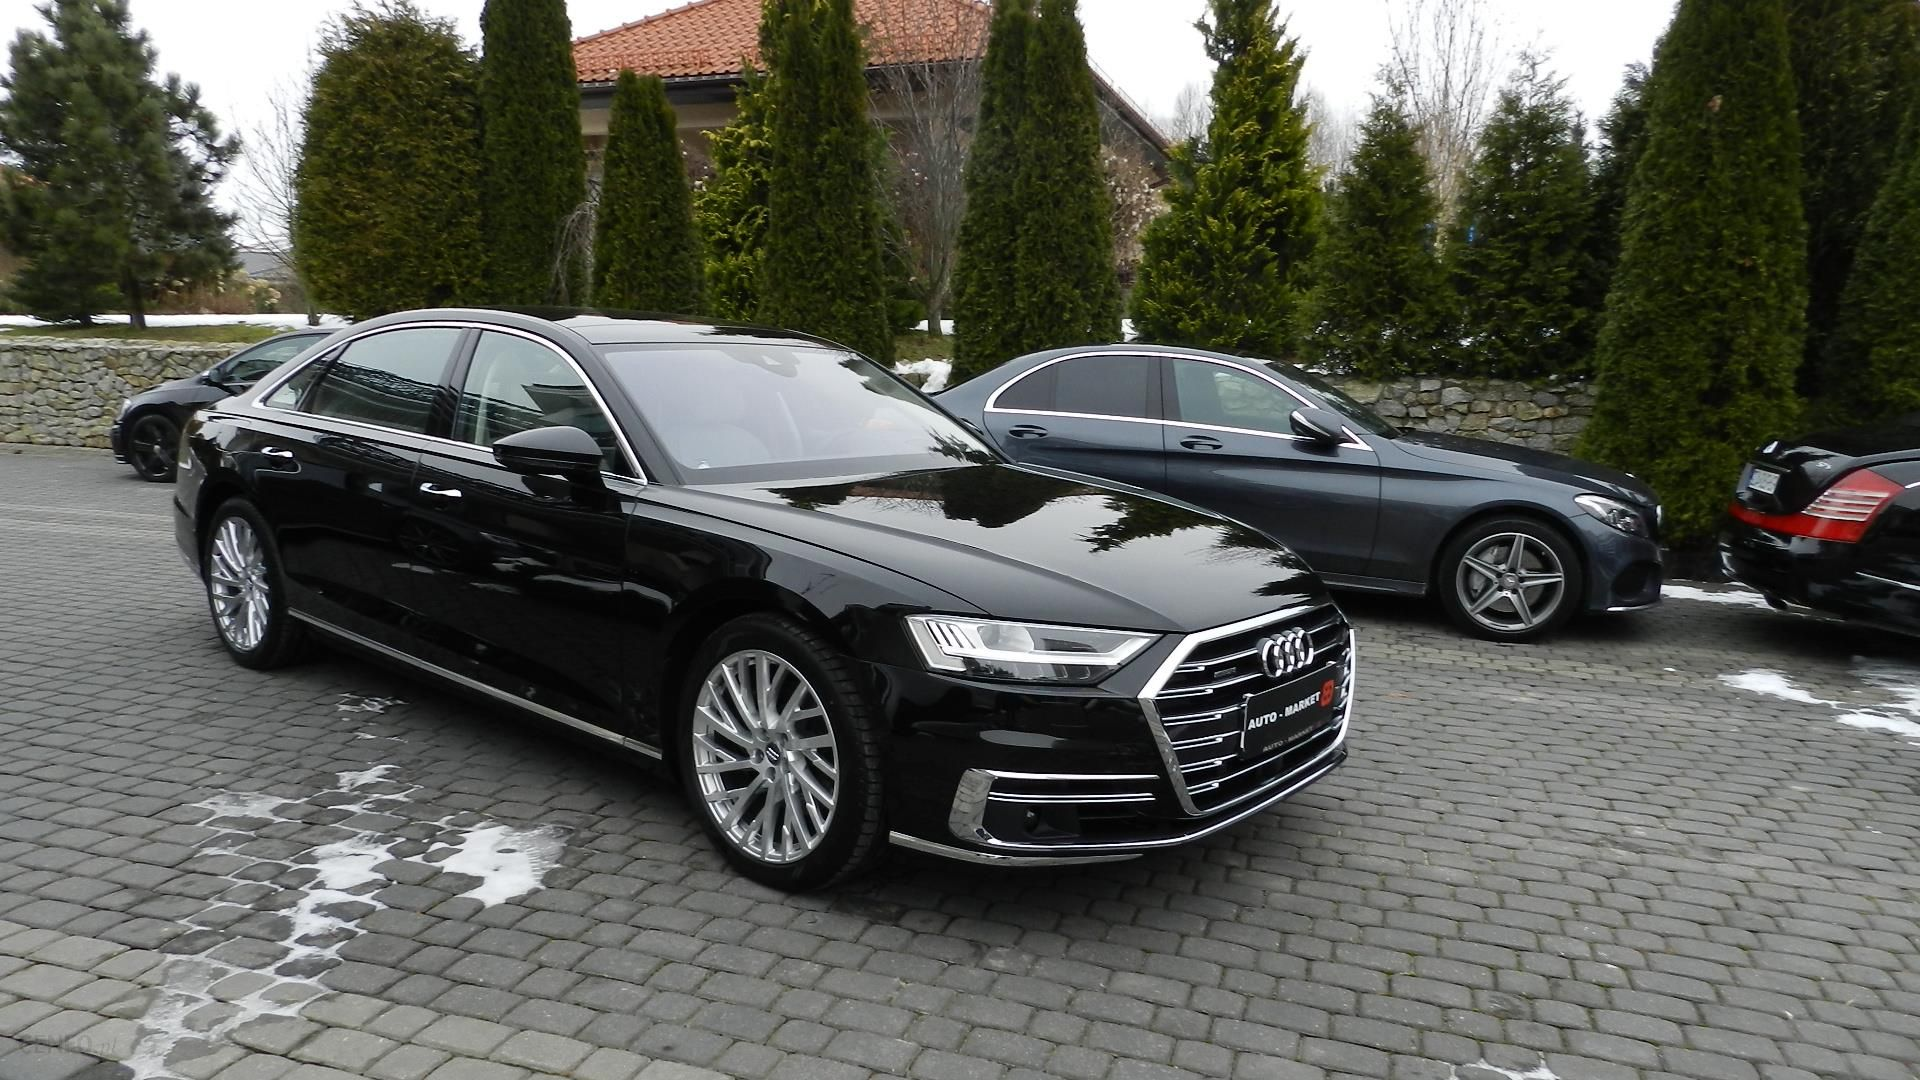 Audi A8 D5 Car Review And Gallery